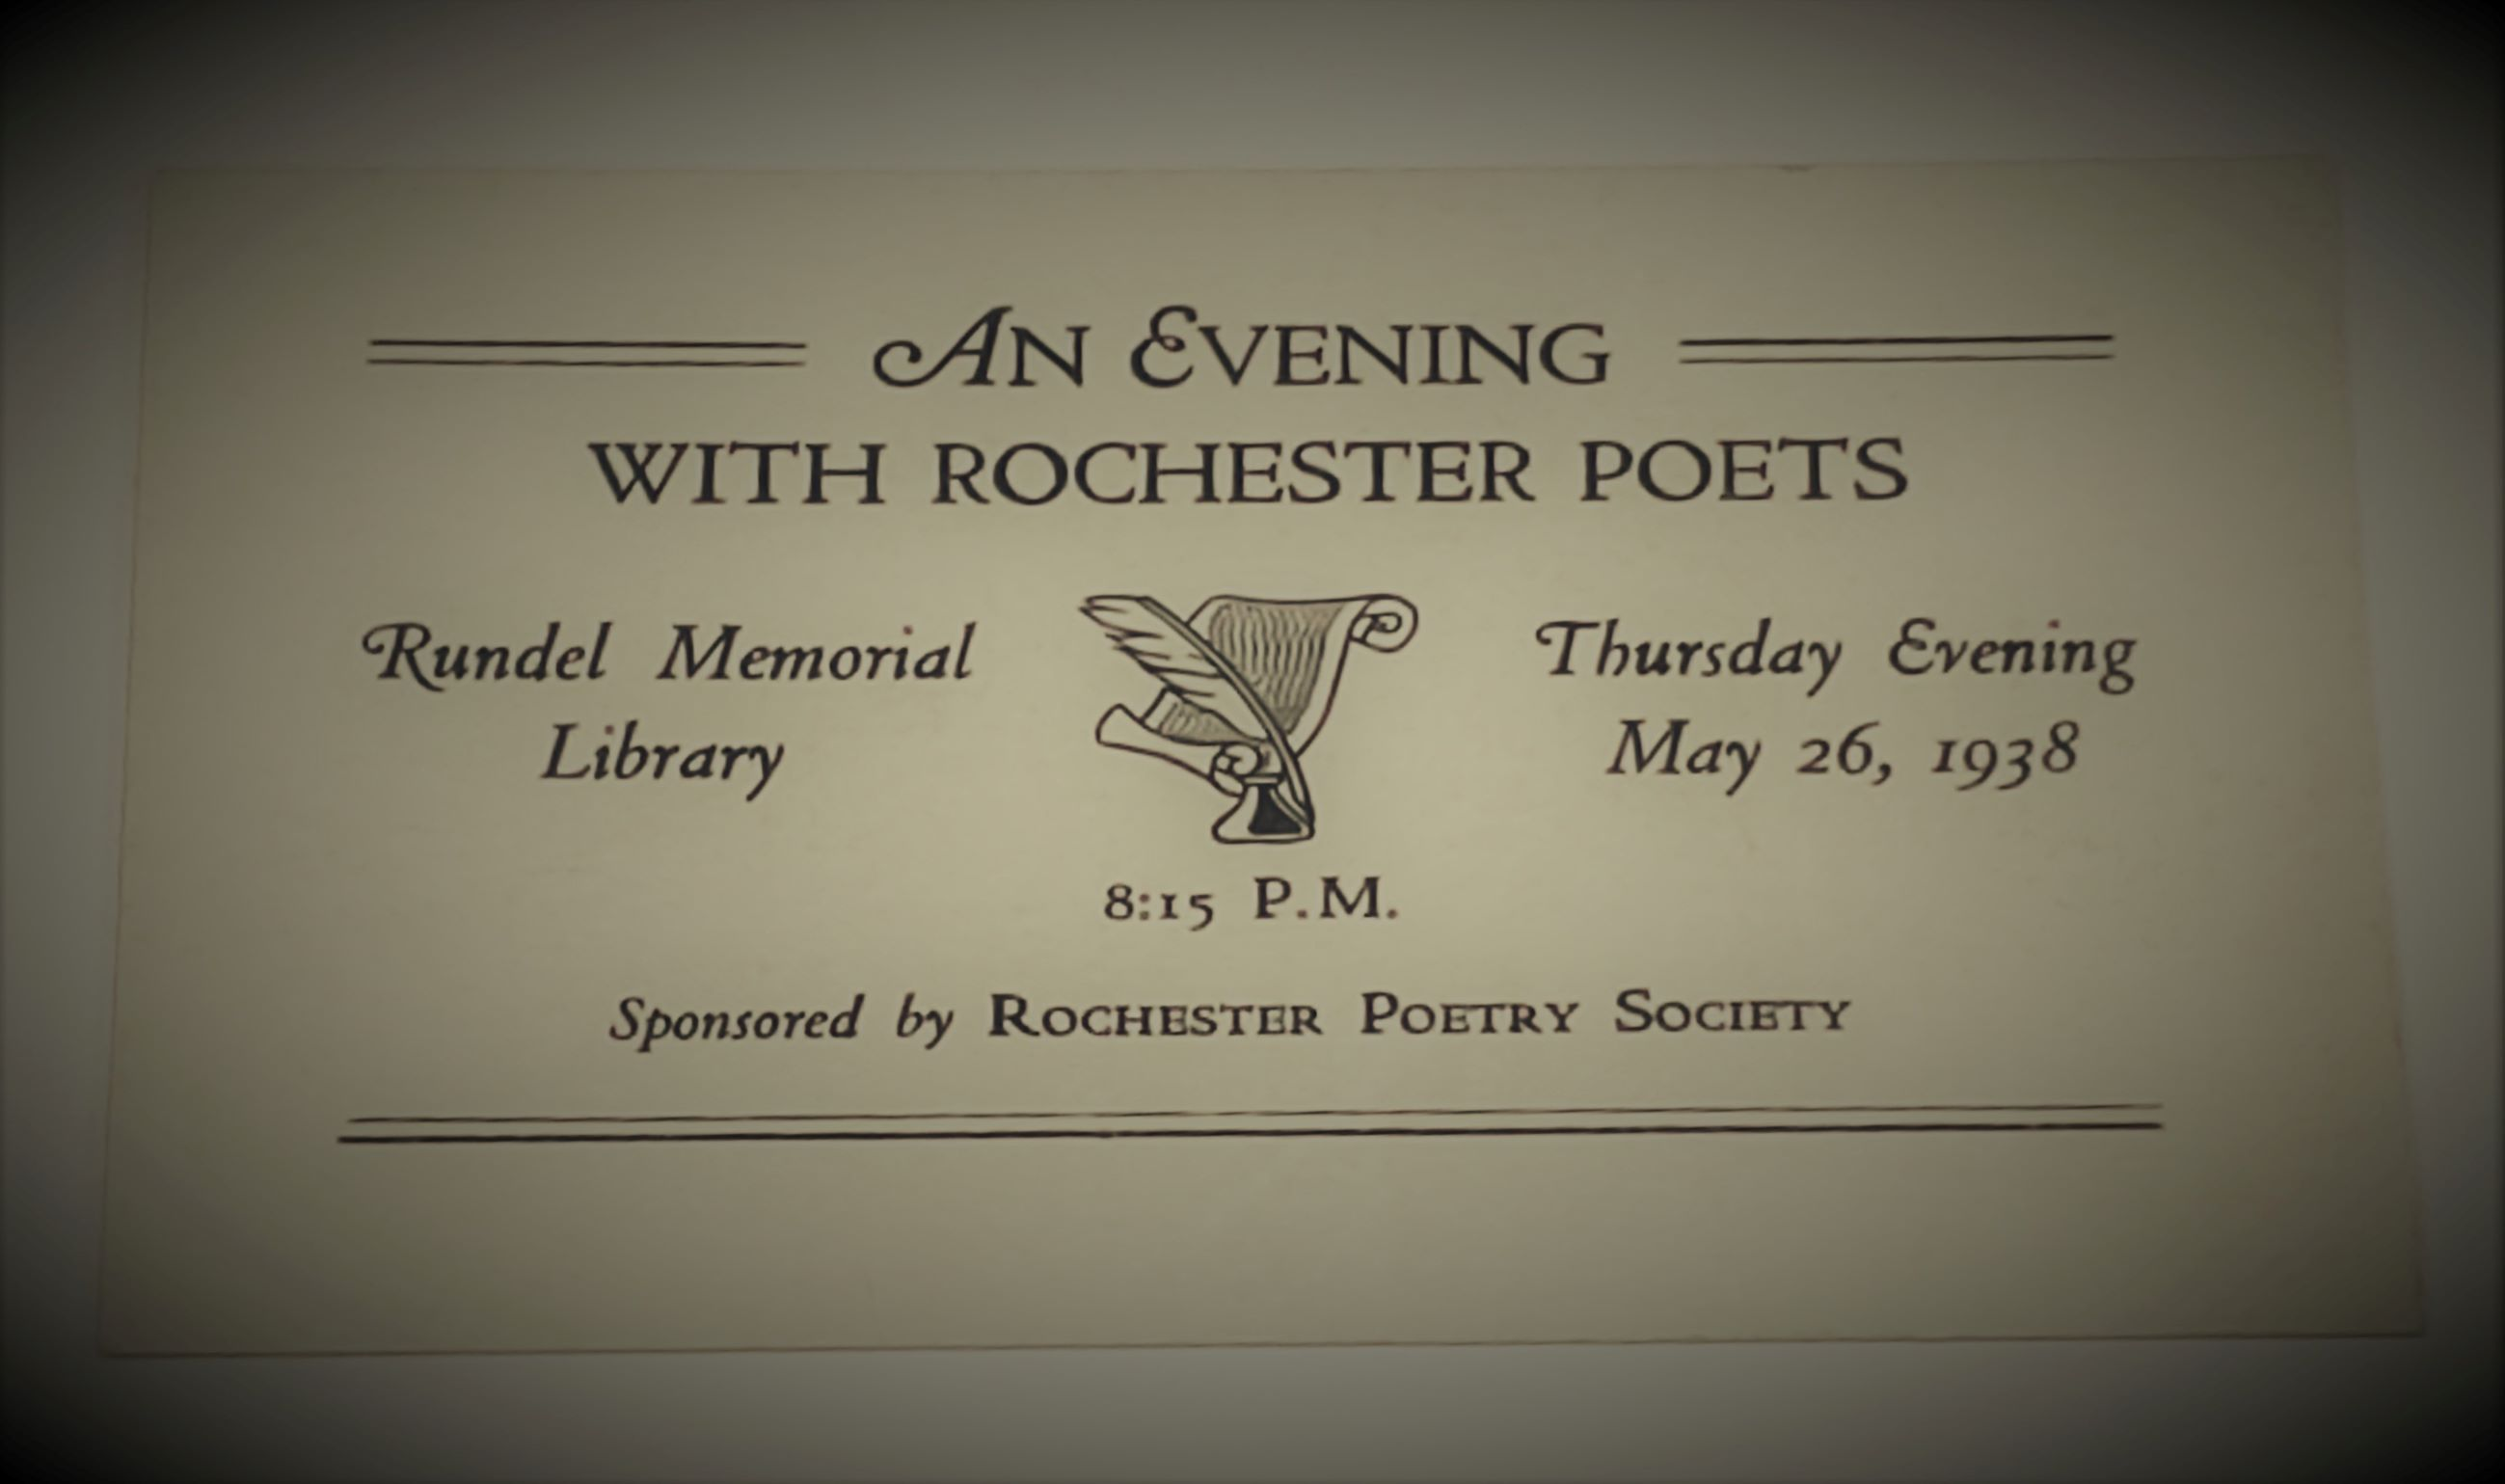 Rochester Poetry Society 1938 event